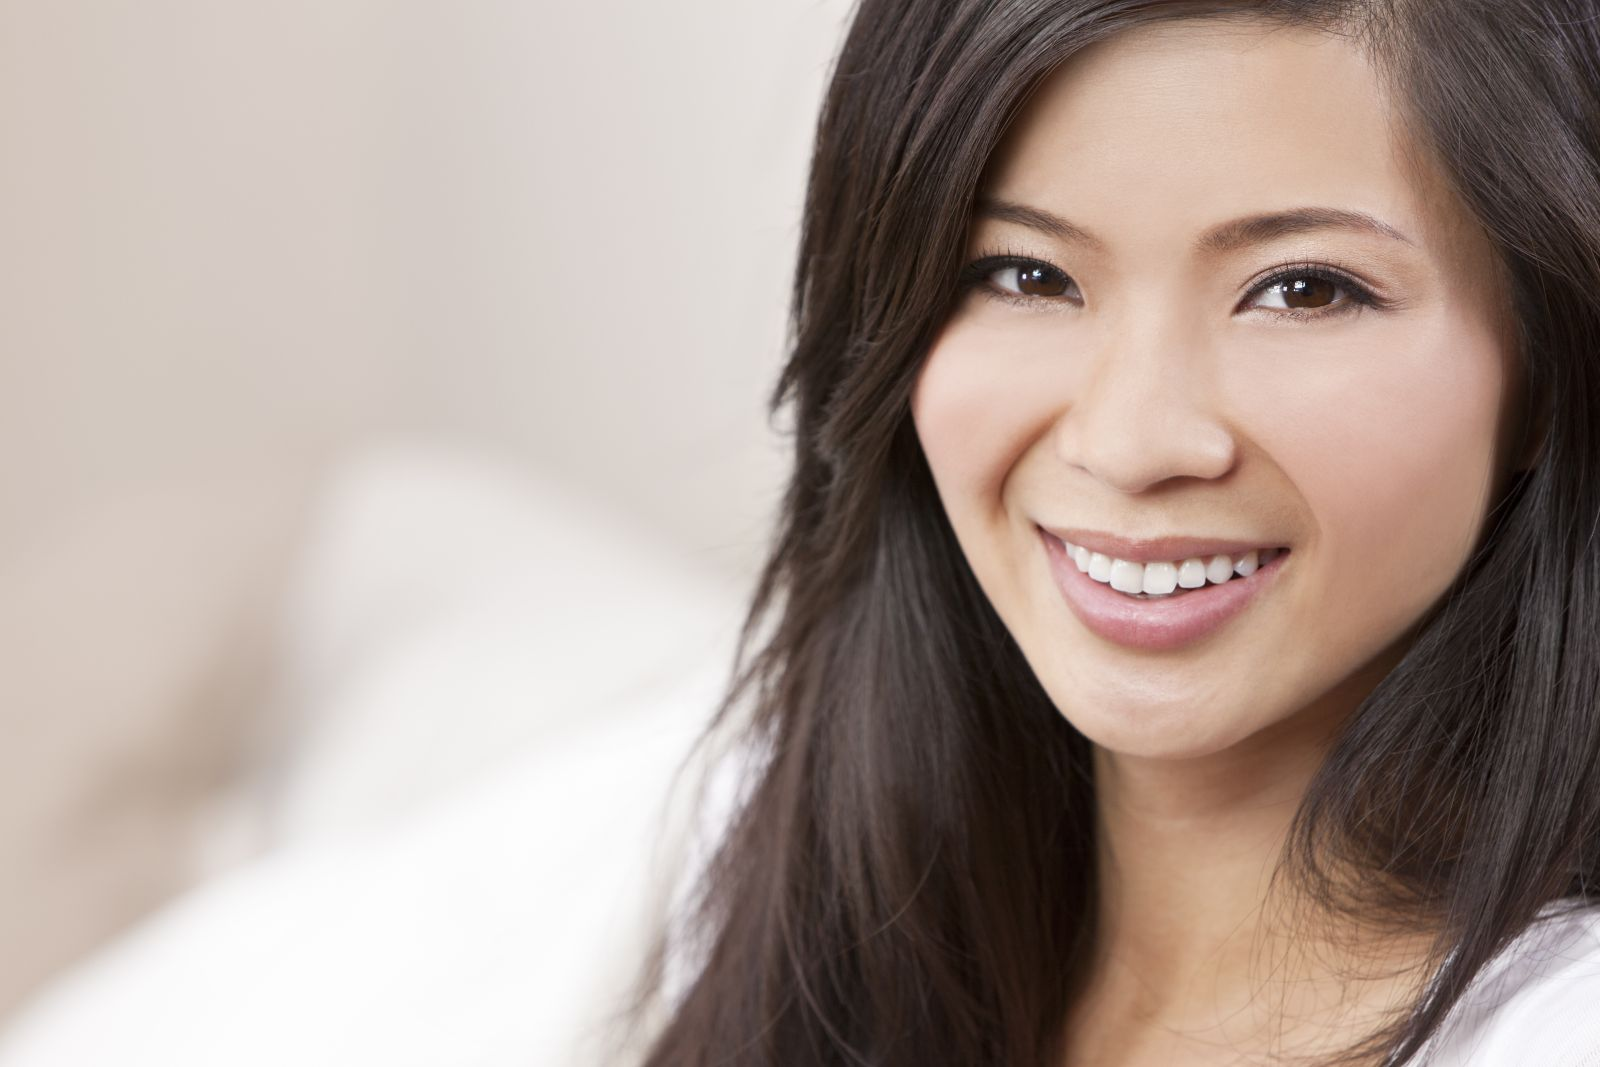 Our westchester cosmetic dentists want you to get your best smile!